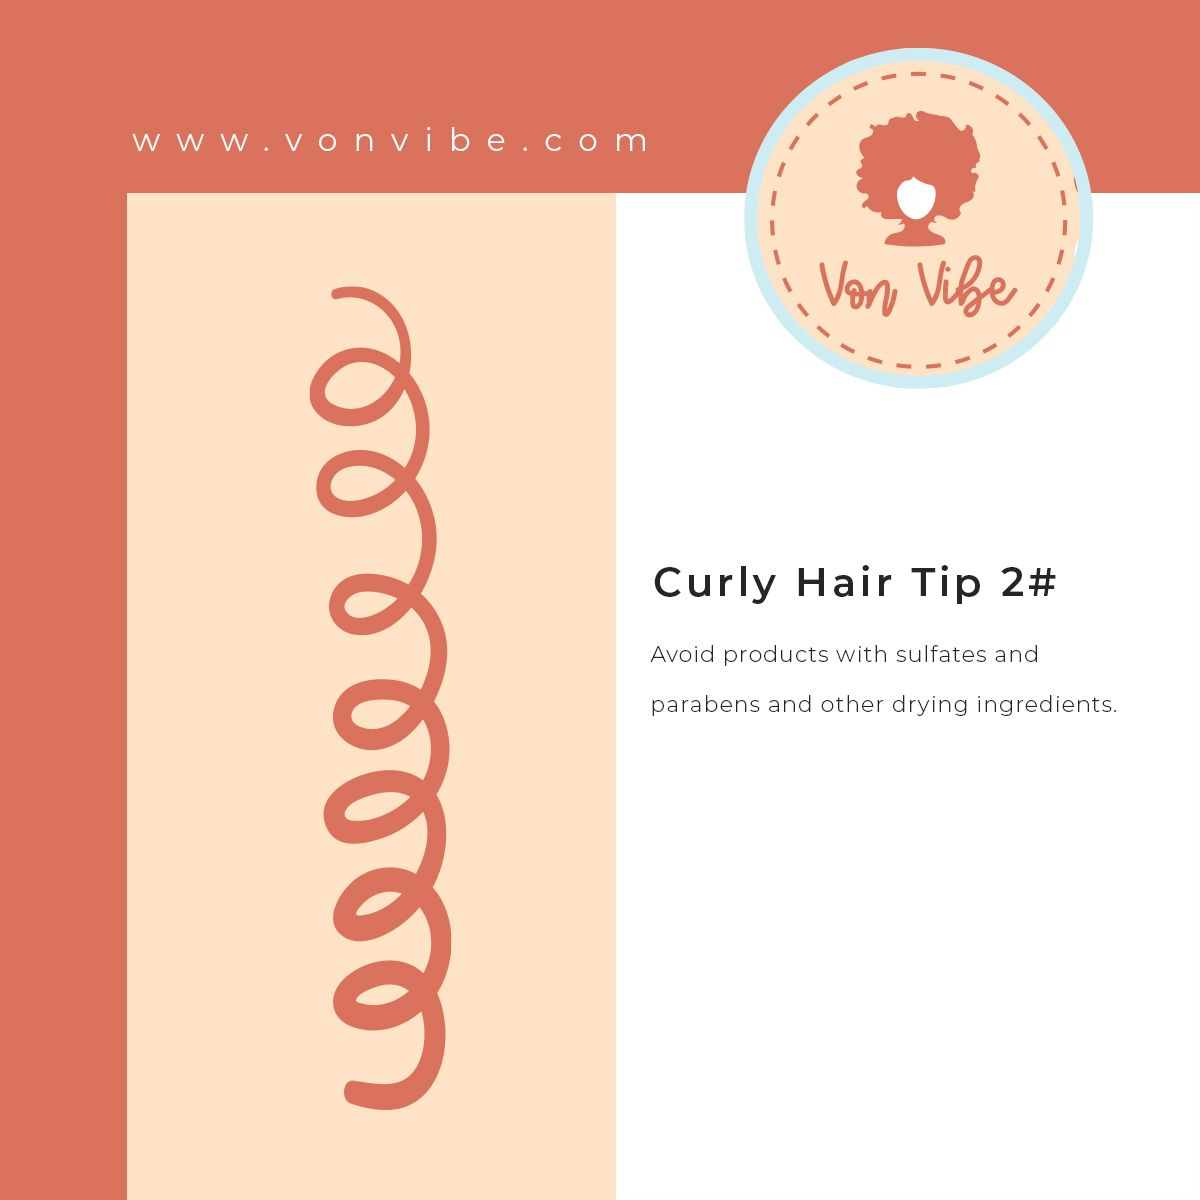 Here's today's tip. Feel free to visit our website to explore our full hair guide. _ _ #curlyhair #curlyhairtips #healthyhair #naturalhairguide #hairtips #NourishTheirConfidence #naturalhairloves #naturalhairgoals #vonvibe #naturalcurlyhair #hairtips #shinyhair #loveyourhair #hairspiration #naturalhair #4chairgrowth #3chair #3ccurls #4bhair #4bhairstyles #3bhair #3bcurls #vonvibe #curlyhairdontcare #kinkycurly #kidshairproducts #naturalhairproducts #kidshaircare #mixedhair #mixedhairkids